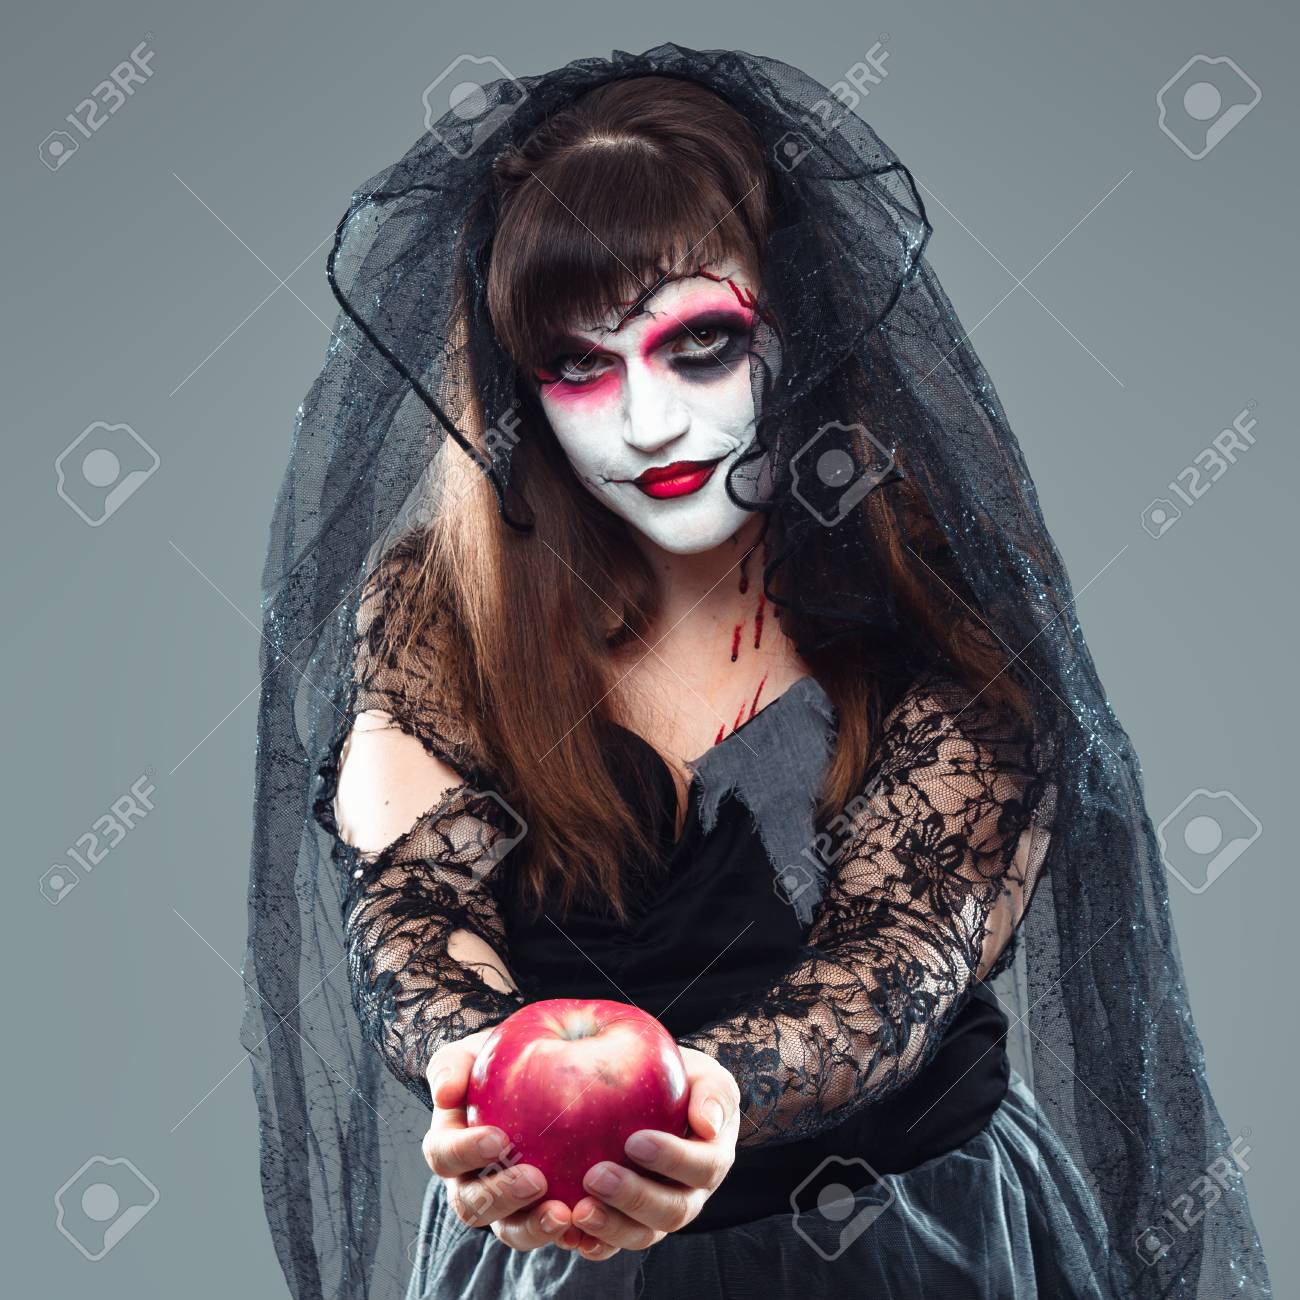 Dead Bride Halloween Costume.Woman In A Carnival Costume Of A Witch Or A Dead Bride Holding